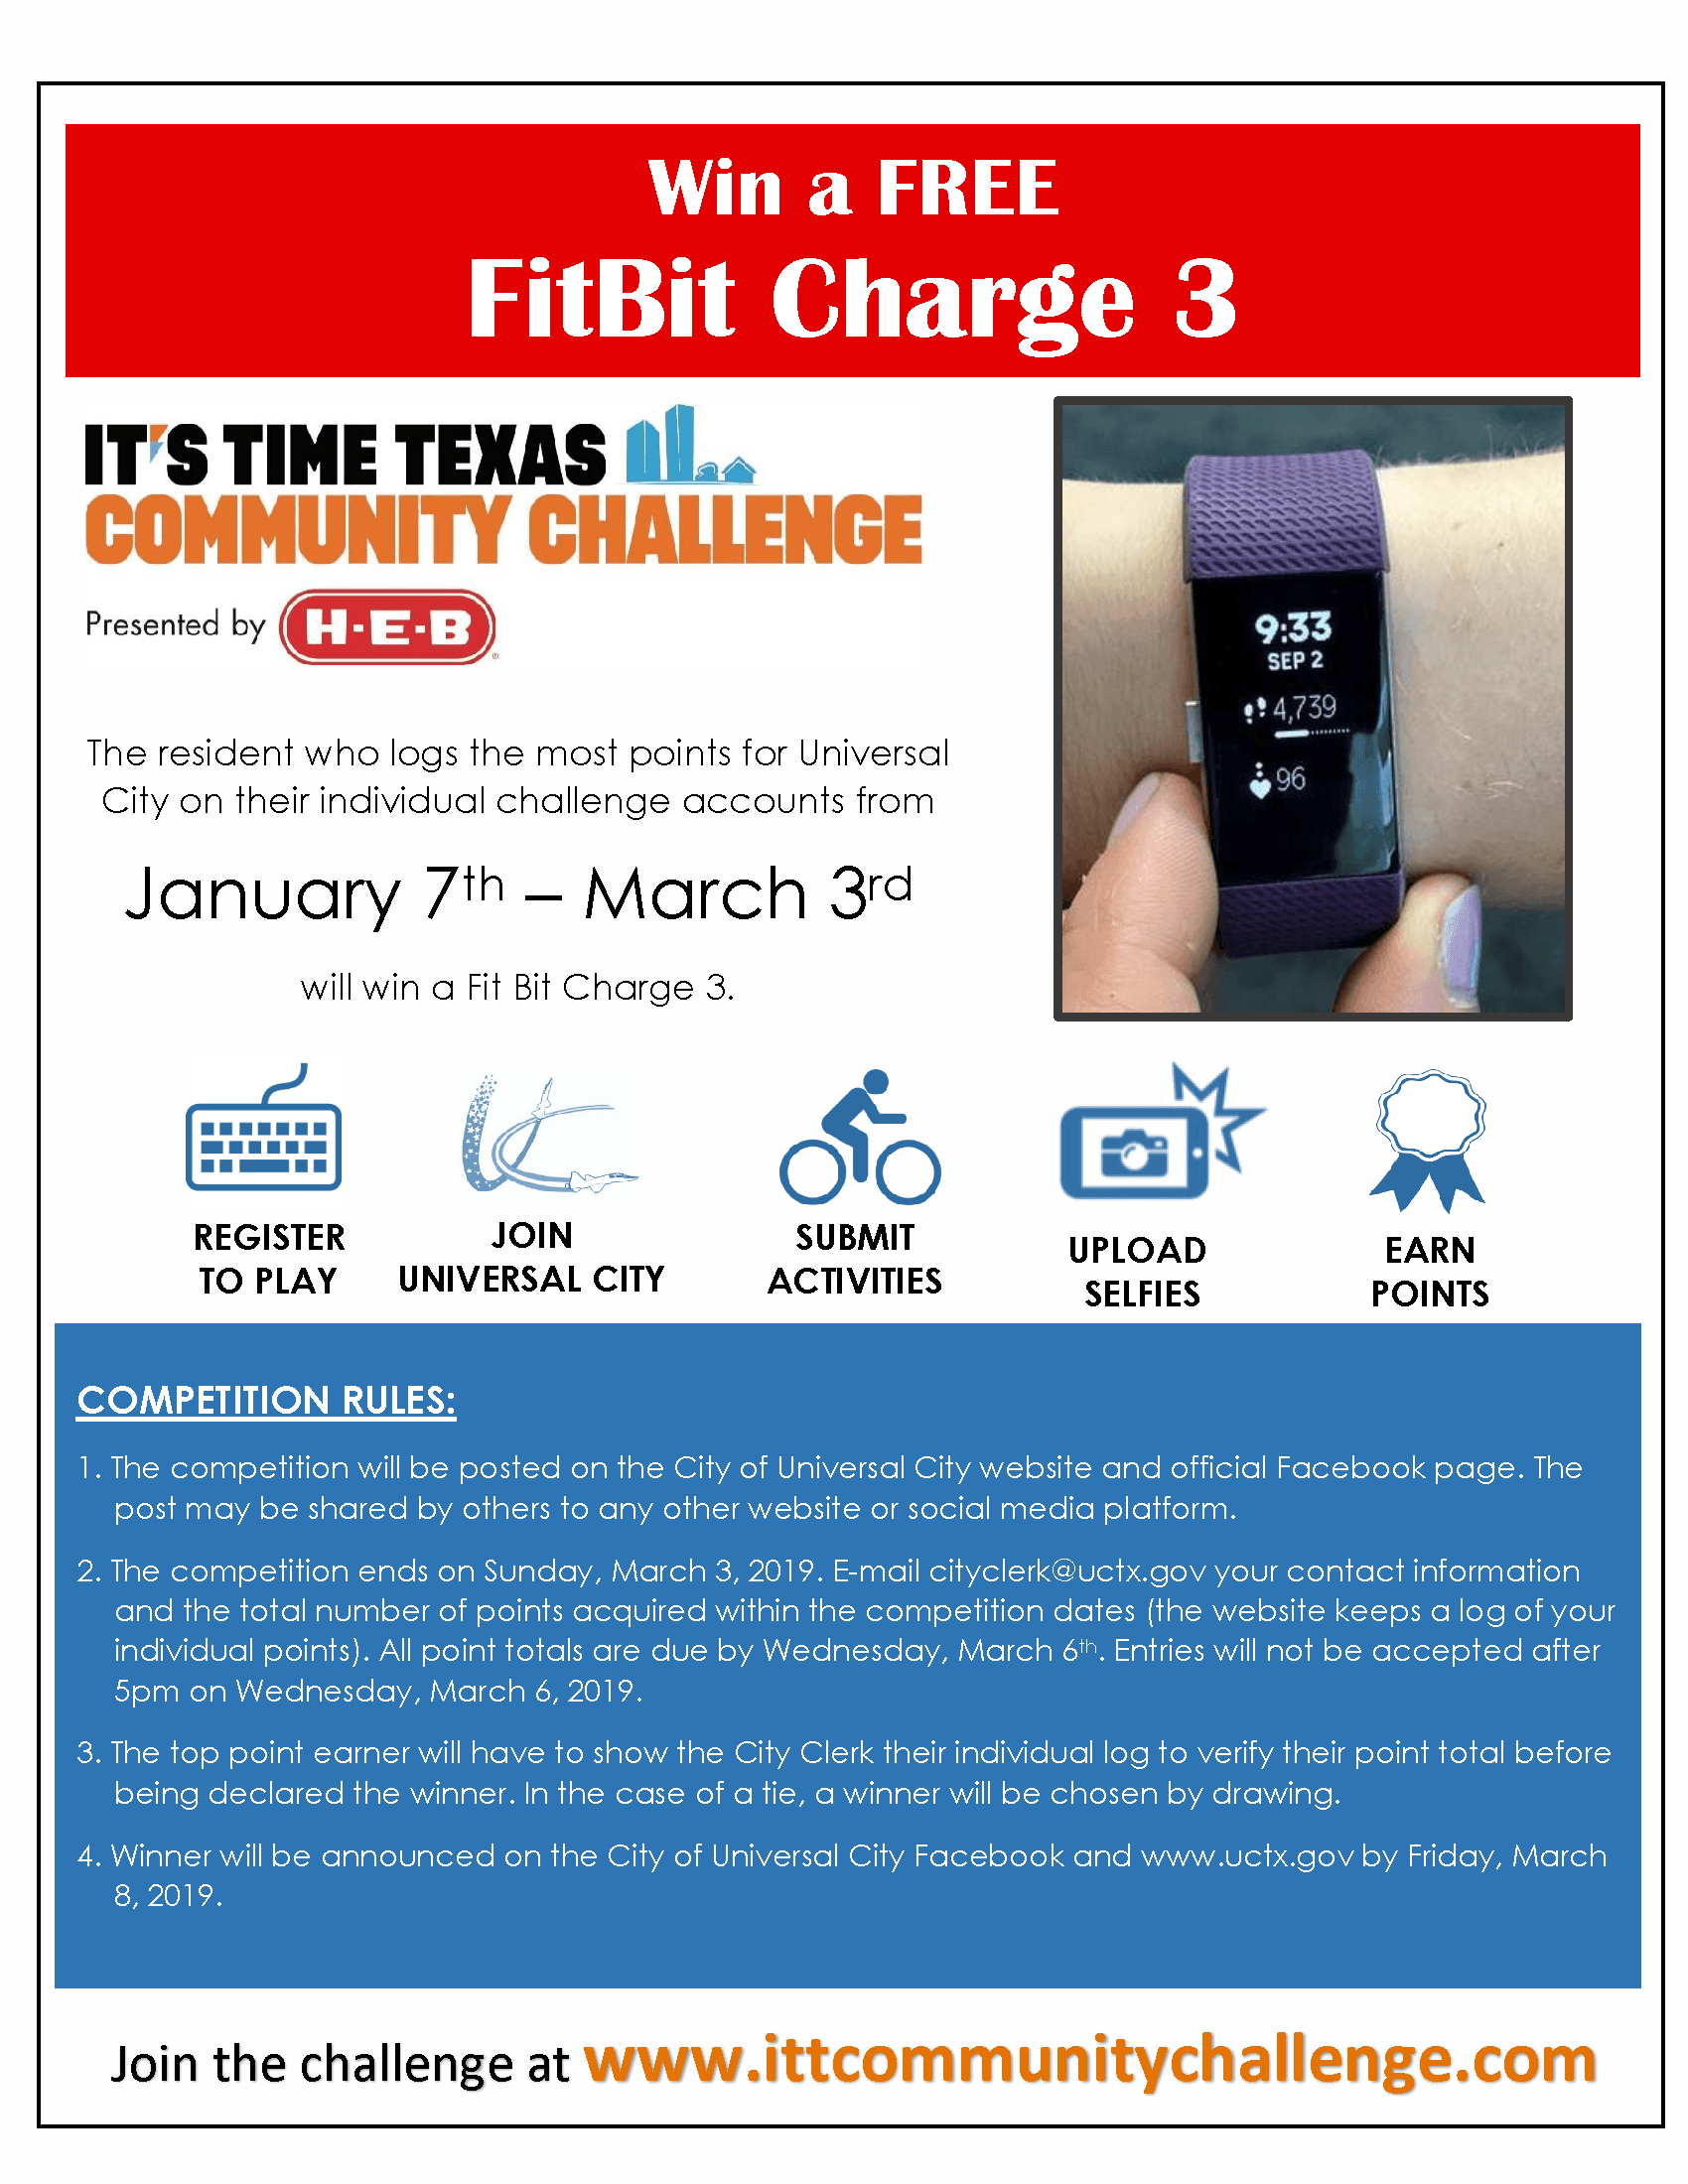 2019 ITT UC Resident Challenge Flyer describing rules and picture of fitbit